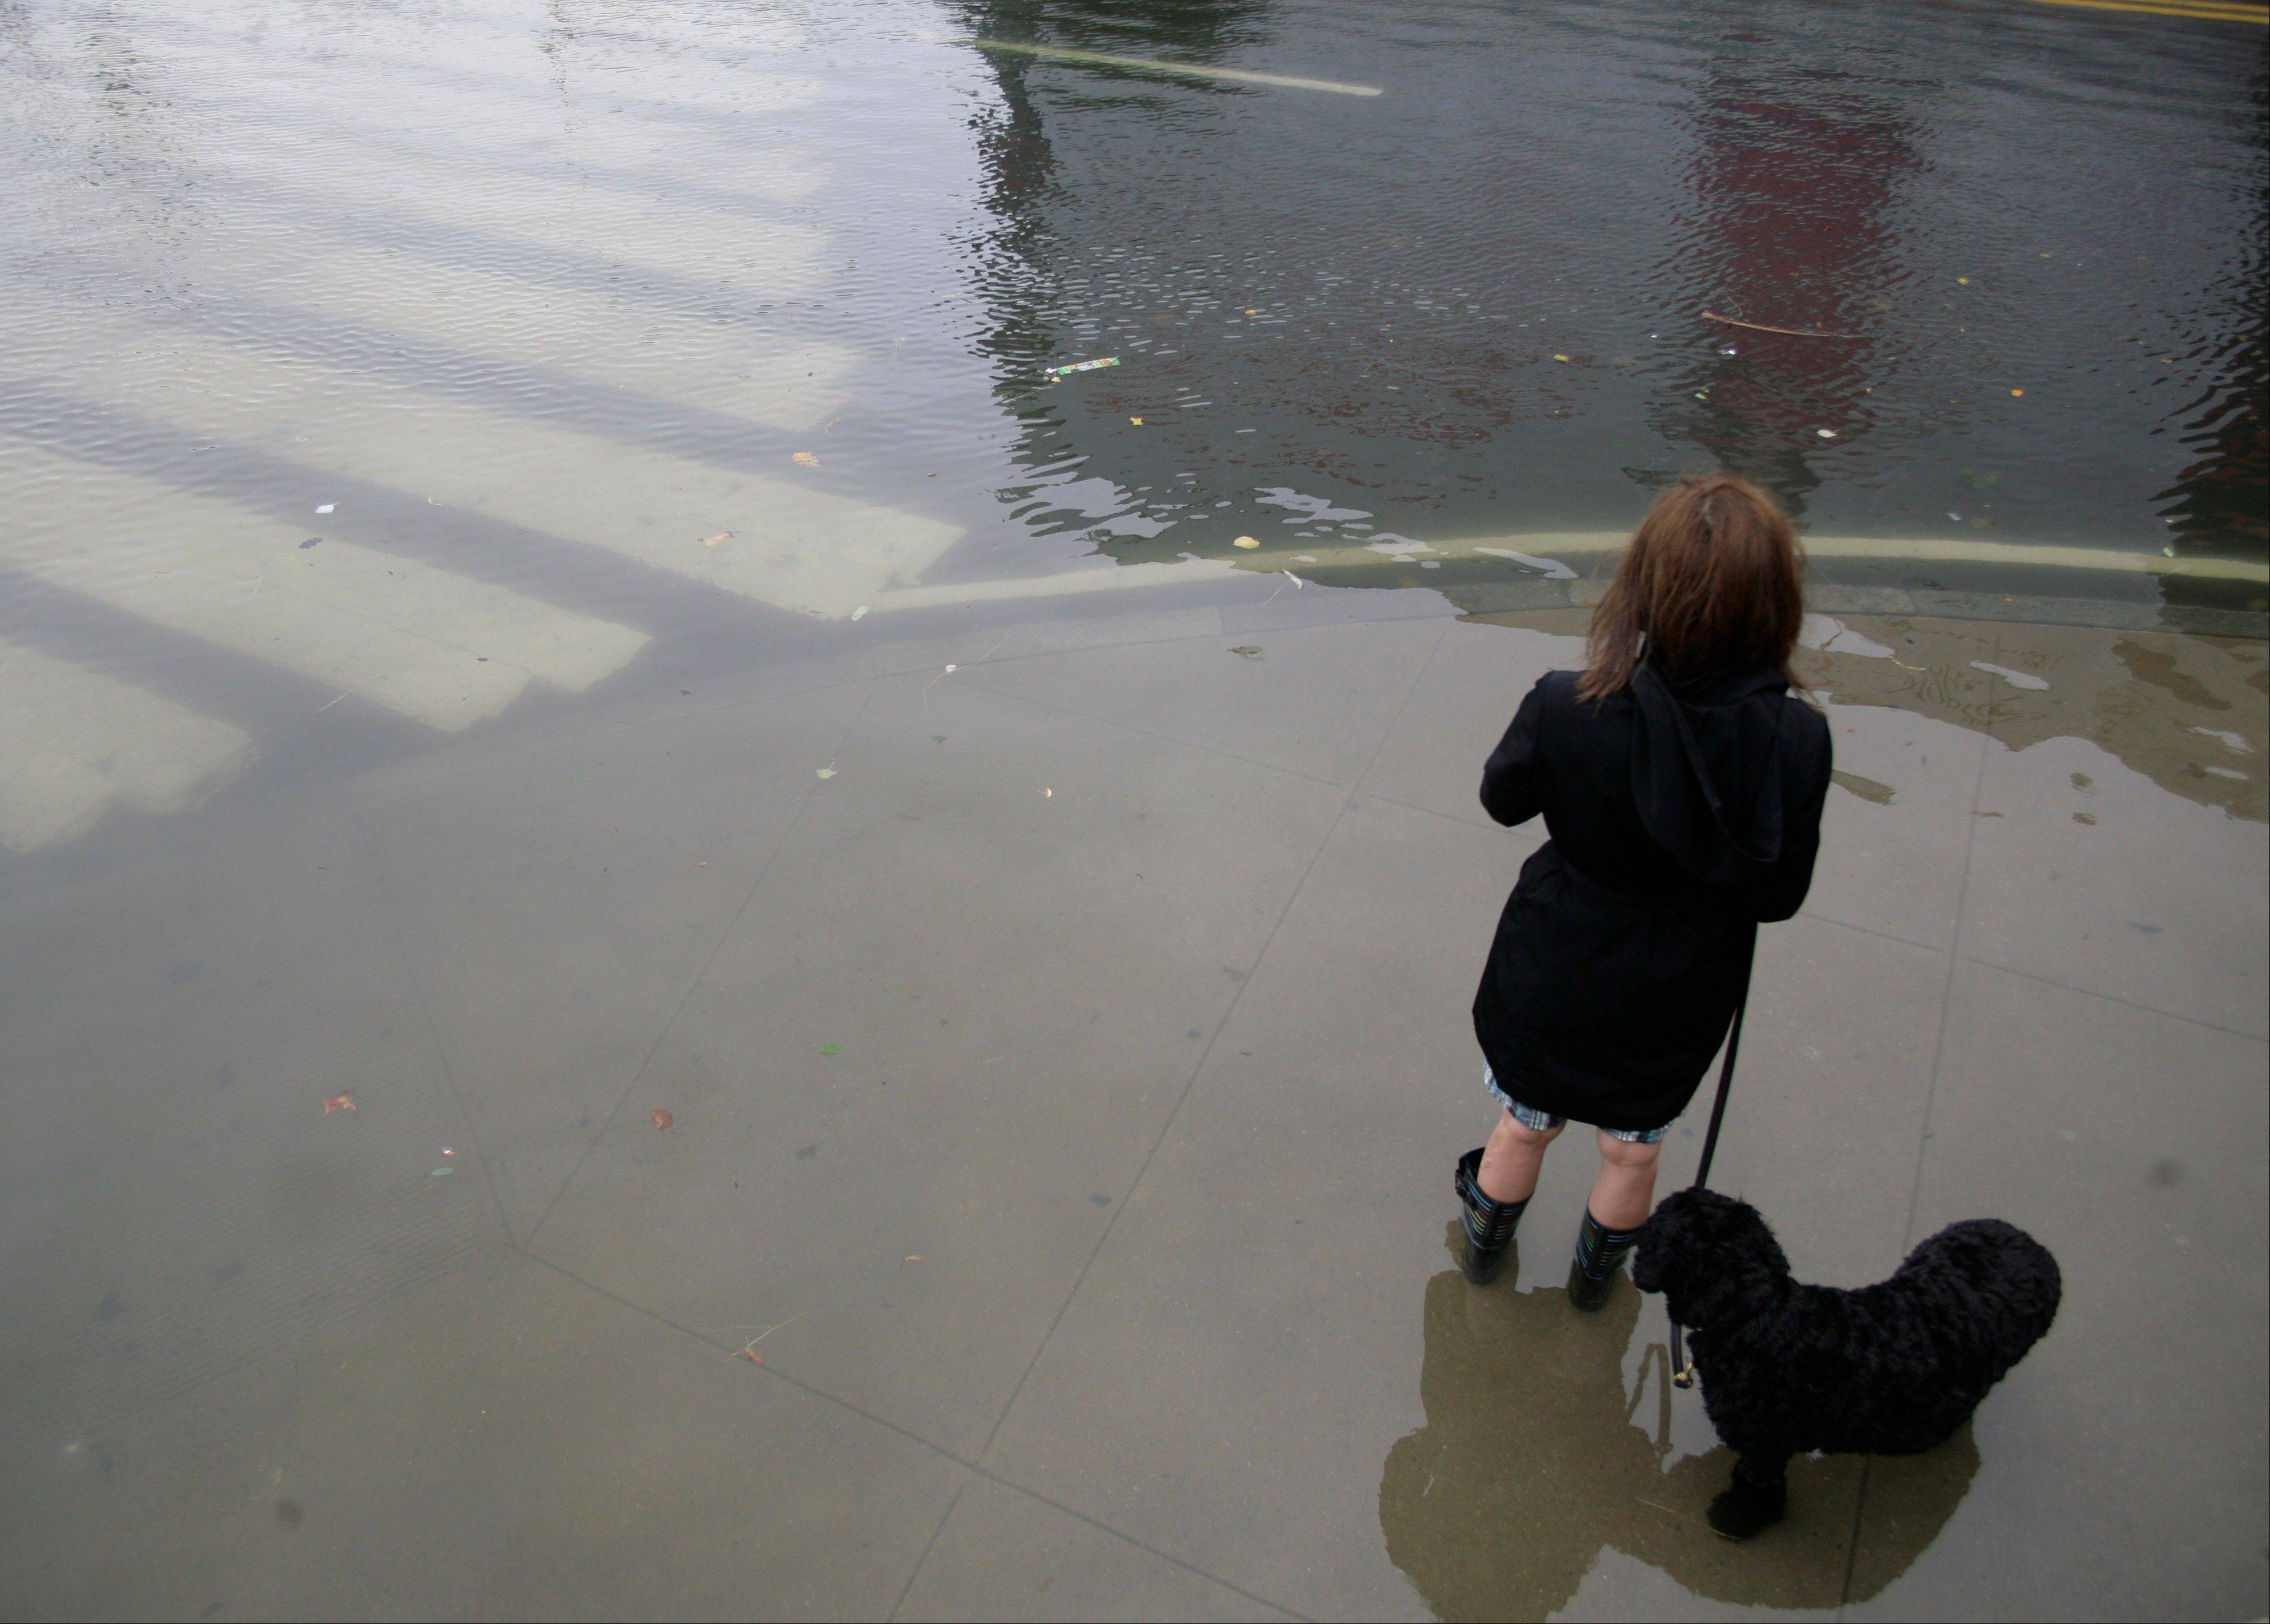 A woman walking a dog contemplates the deep water on Manhattan�s West Side as Tropical Storm Irene passes through the city, Sunday, Aug. 26, 2011 in New York. Although downgraded from a hurricane to a tropical storm, Irene�s torrential rain couple with high winds and tides worked in concert to flood parts of the city.